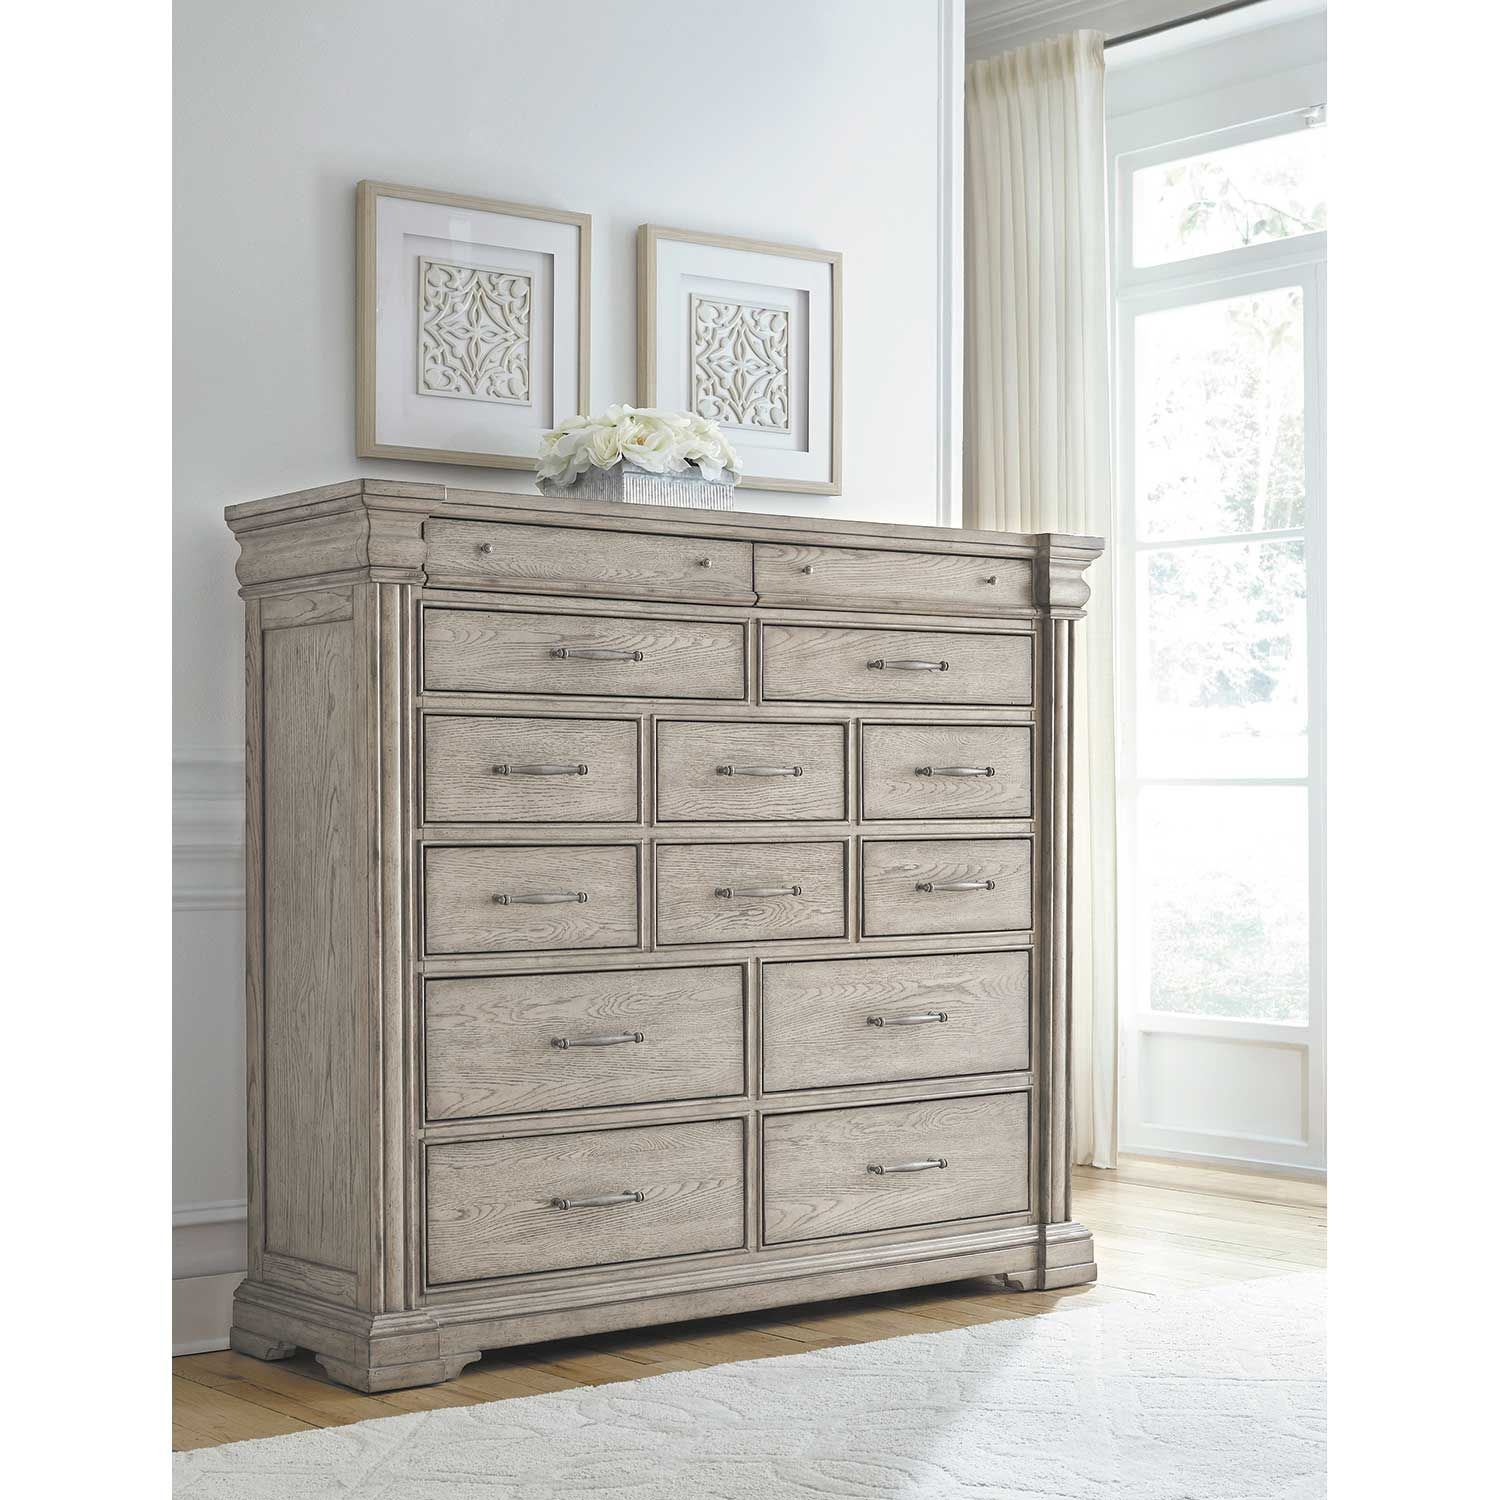 Picture of Madison Ridge 14 Drawer Master Chest